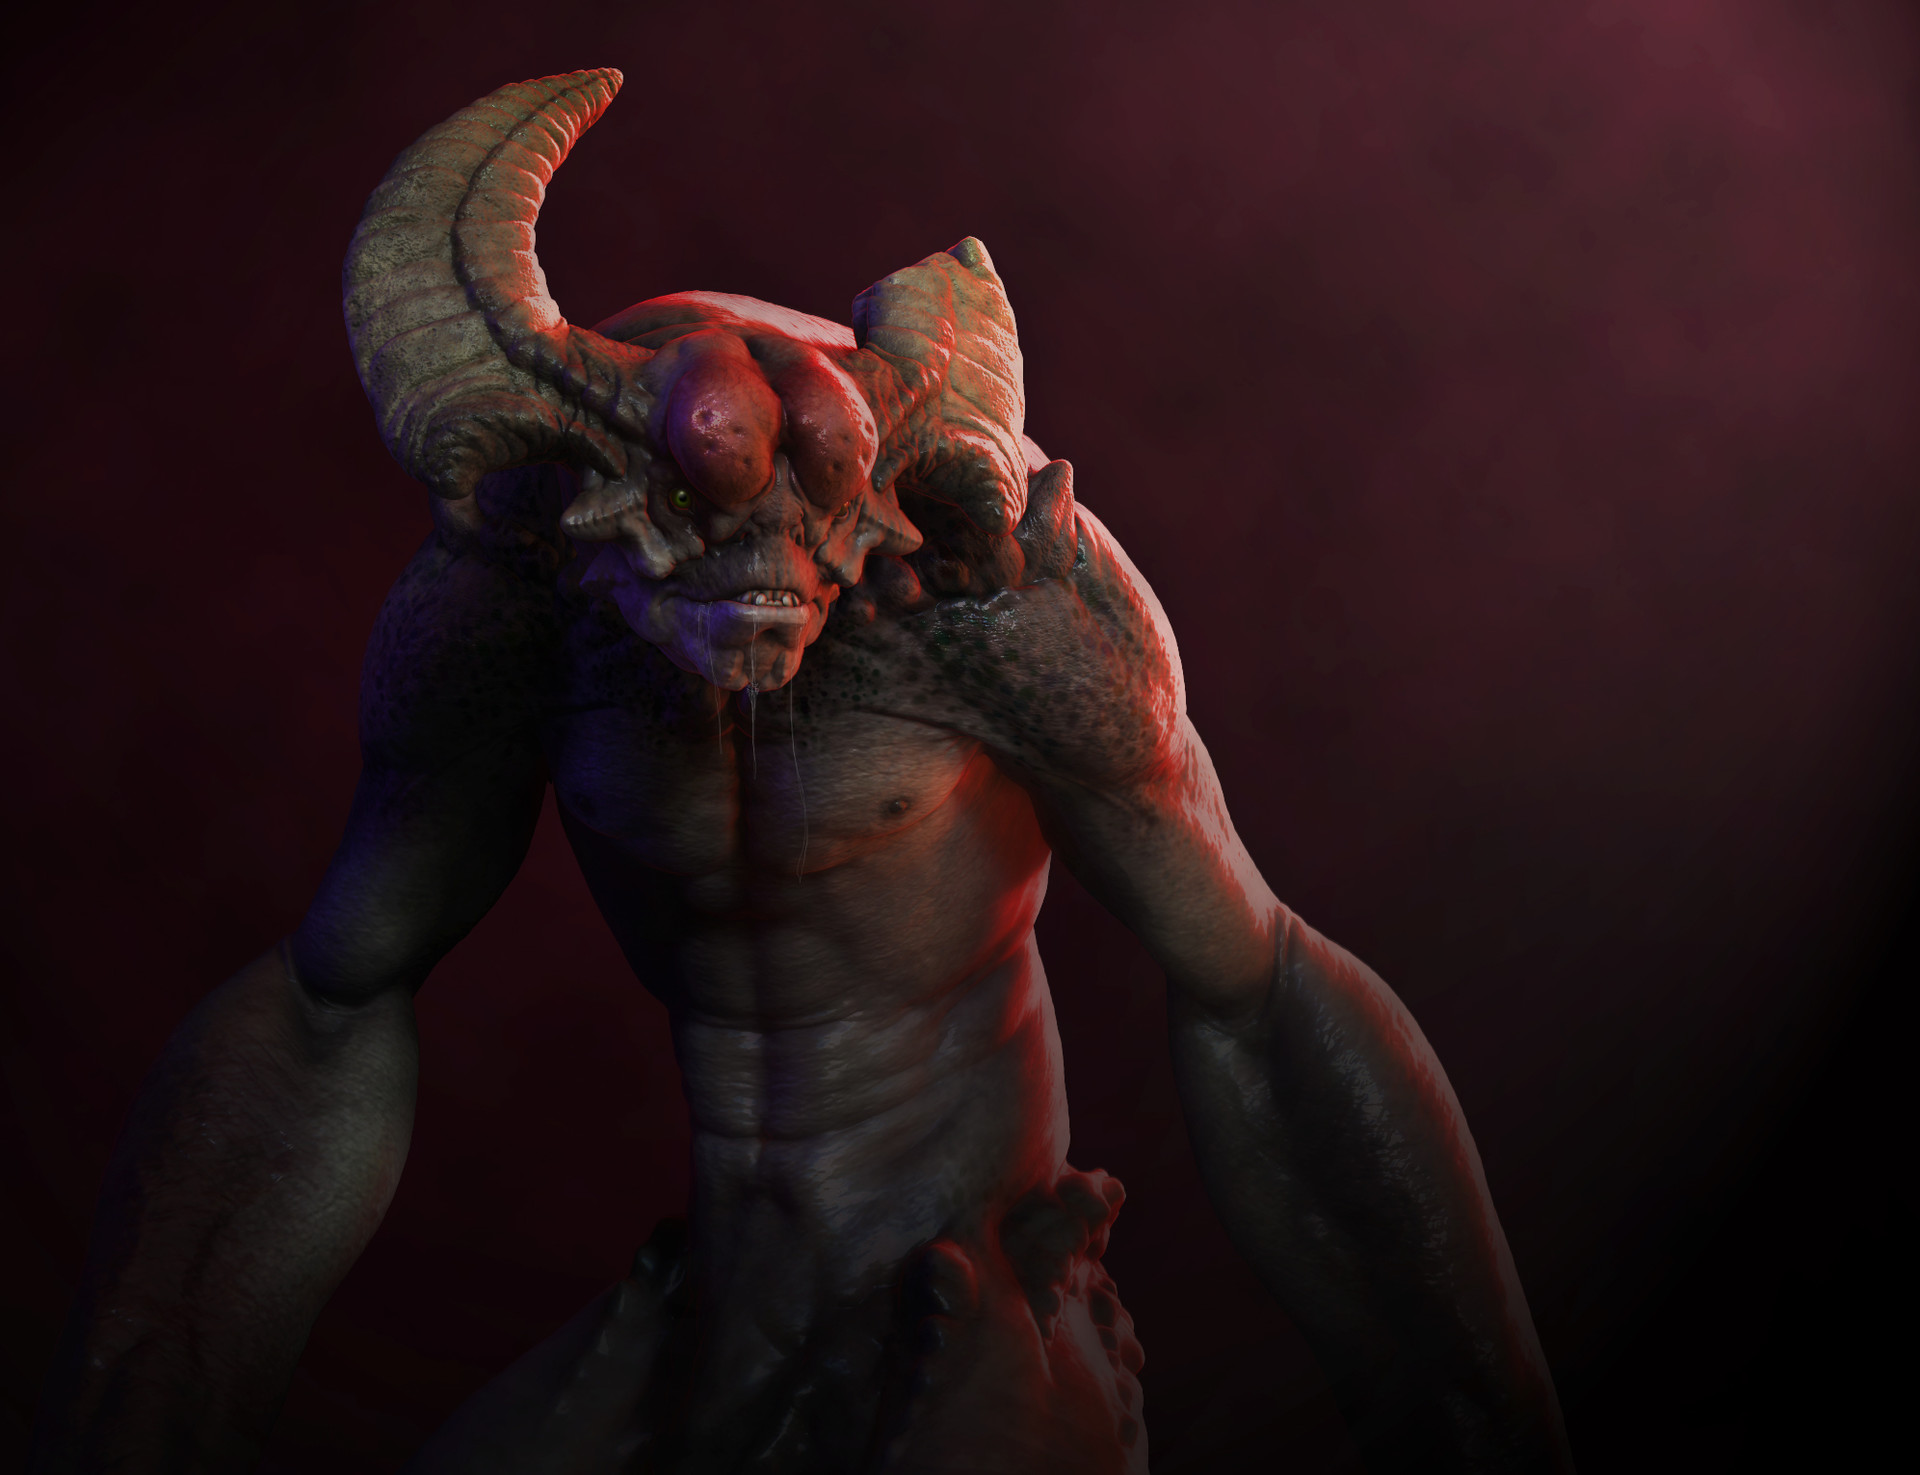 We finish wrapping up the assignment by rendering some layers within zbrush and Compositing our final image. (Class 6)